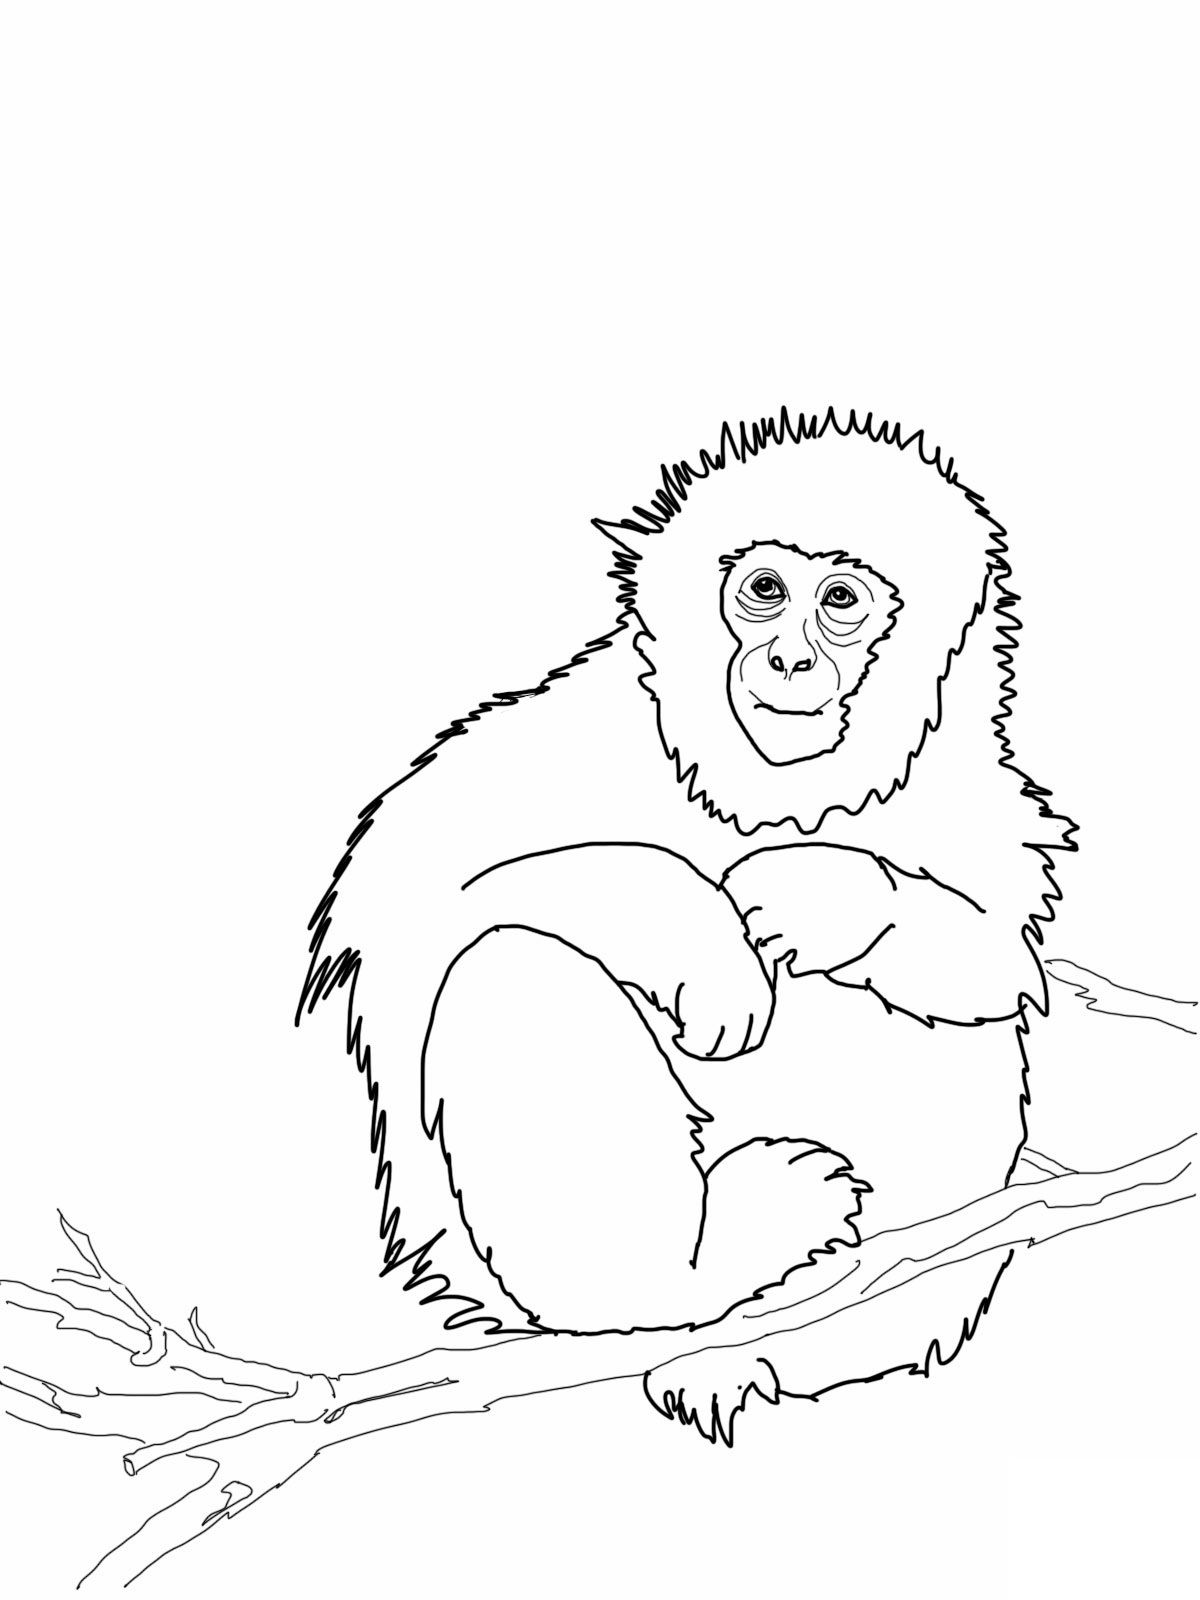 Cute-Monkey-Coloring-Pages-Printable.jpg 1,200×1,600 pixels ...